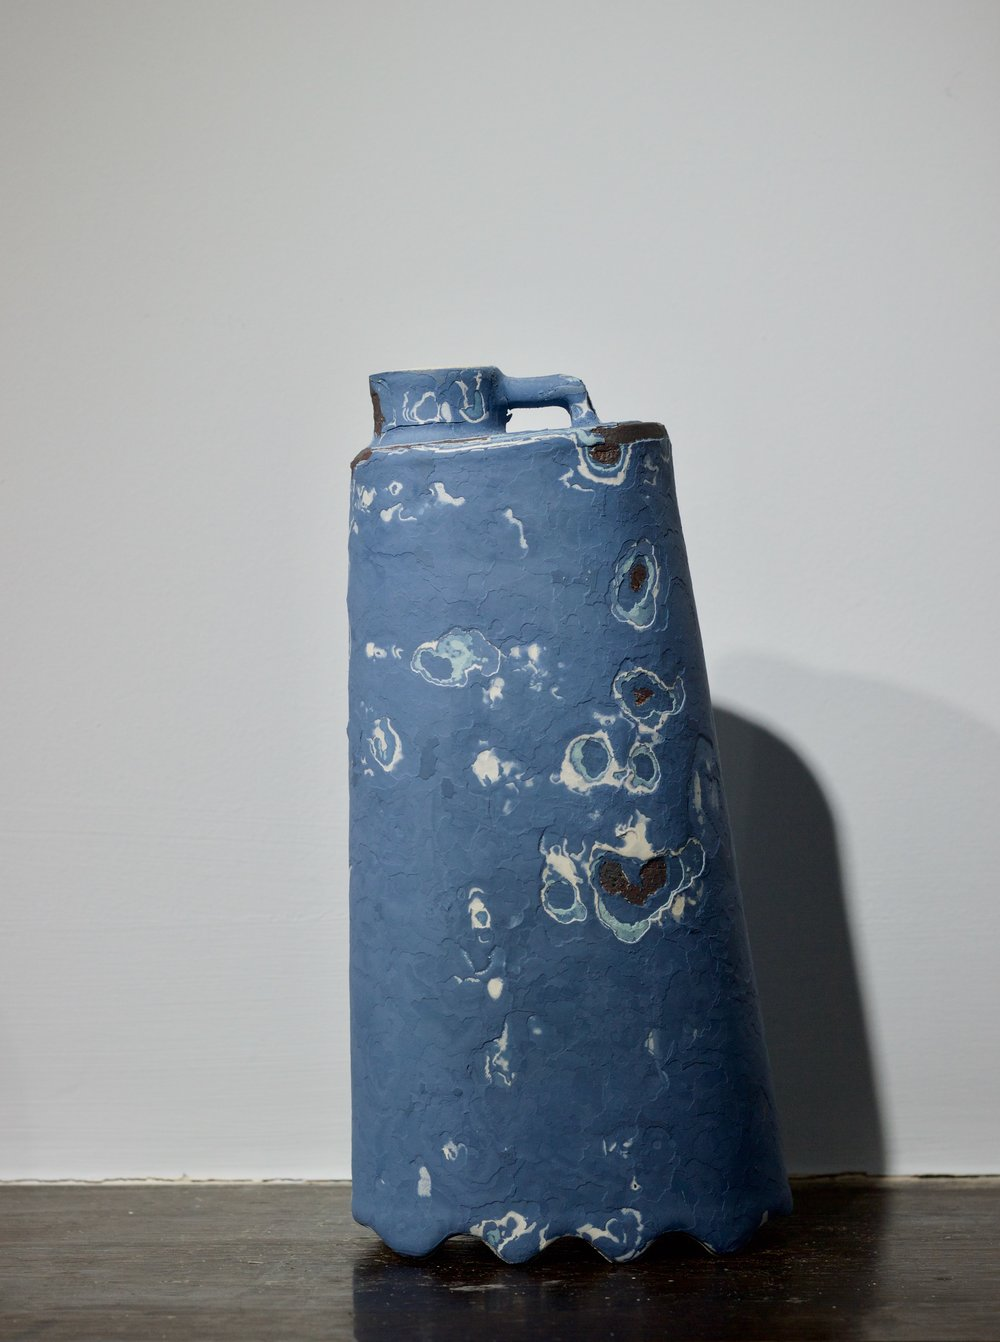 James Faulkner - Big Blue Bottle Vase